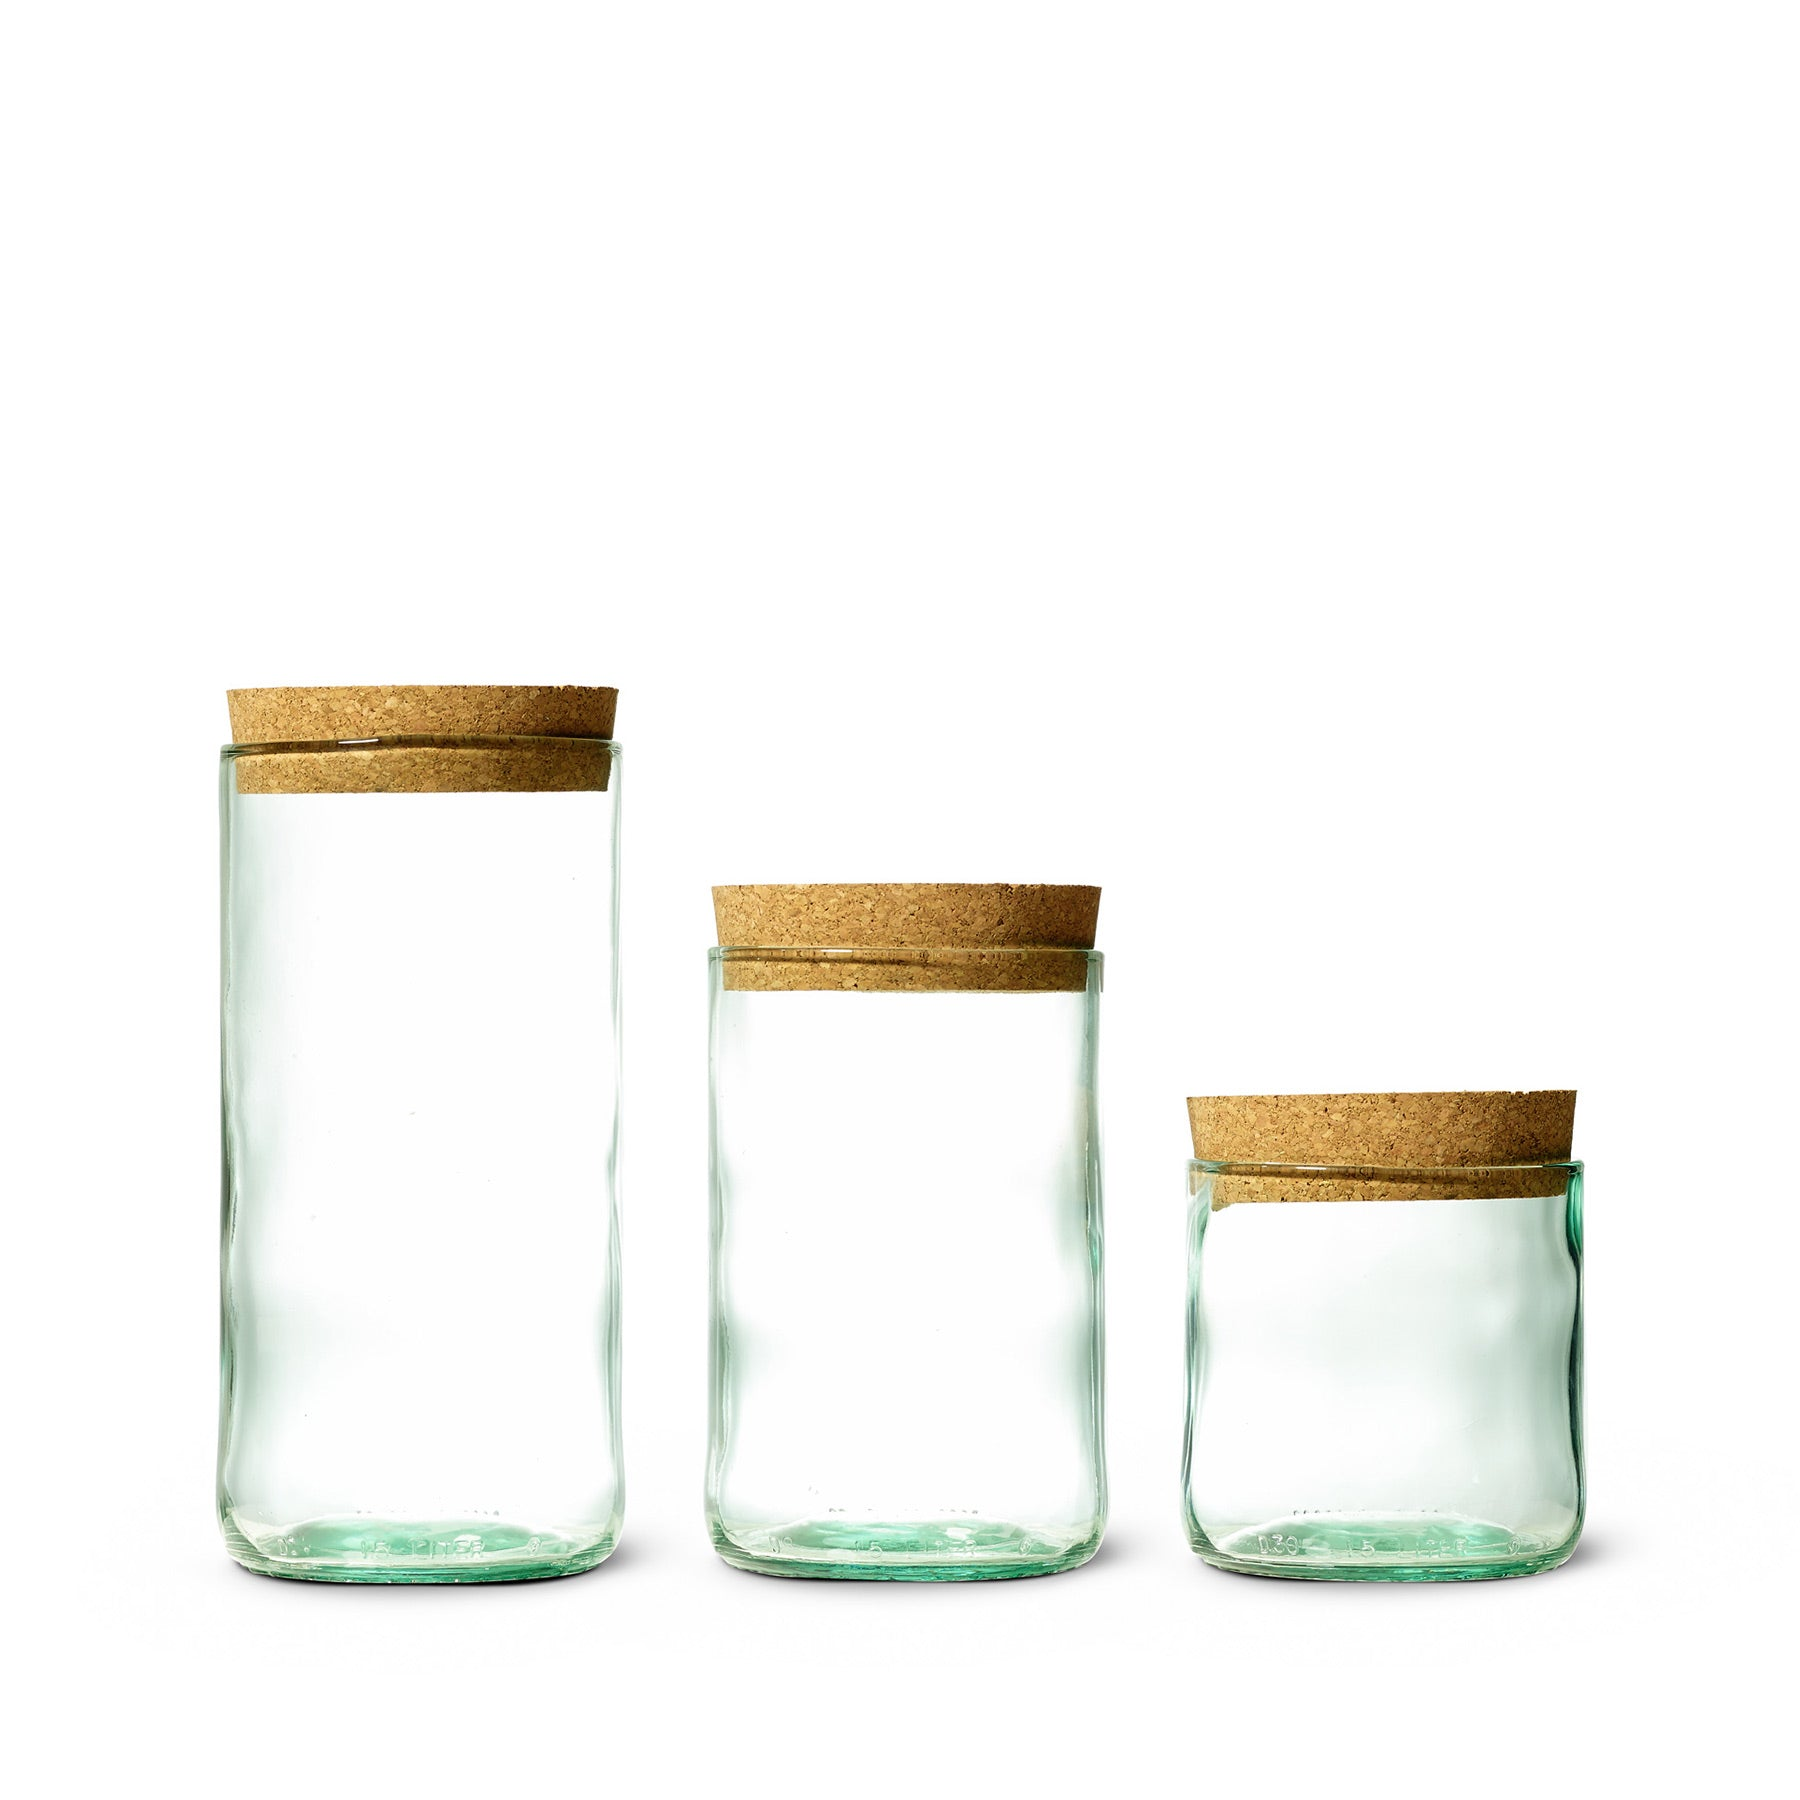 Recycled Bottle Canister in Aqua - Medium